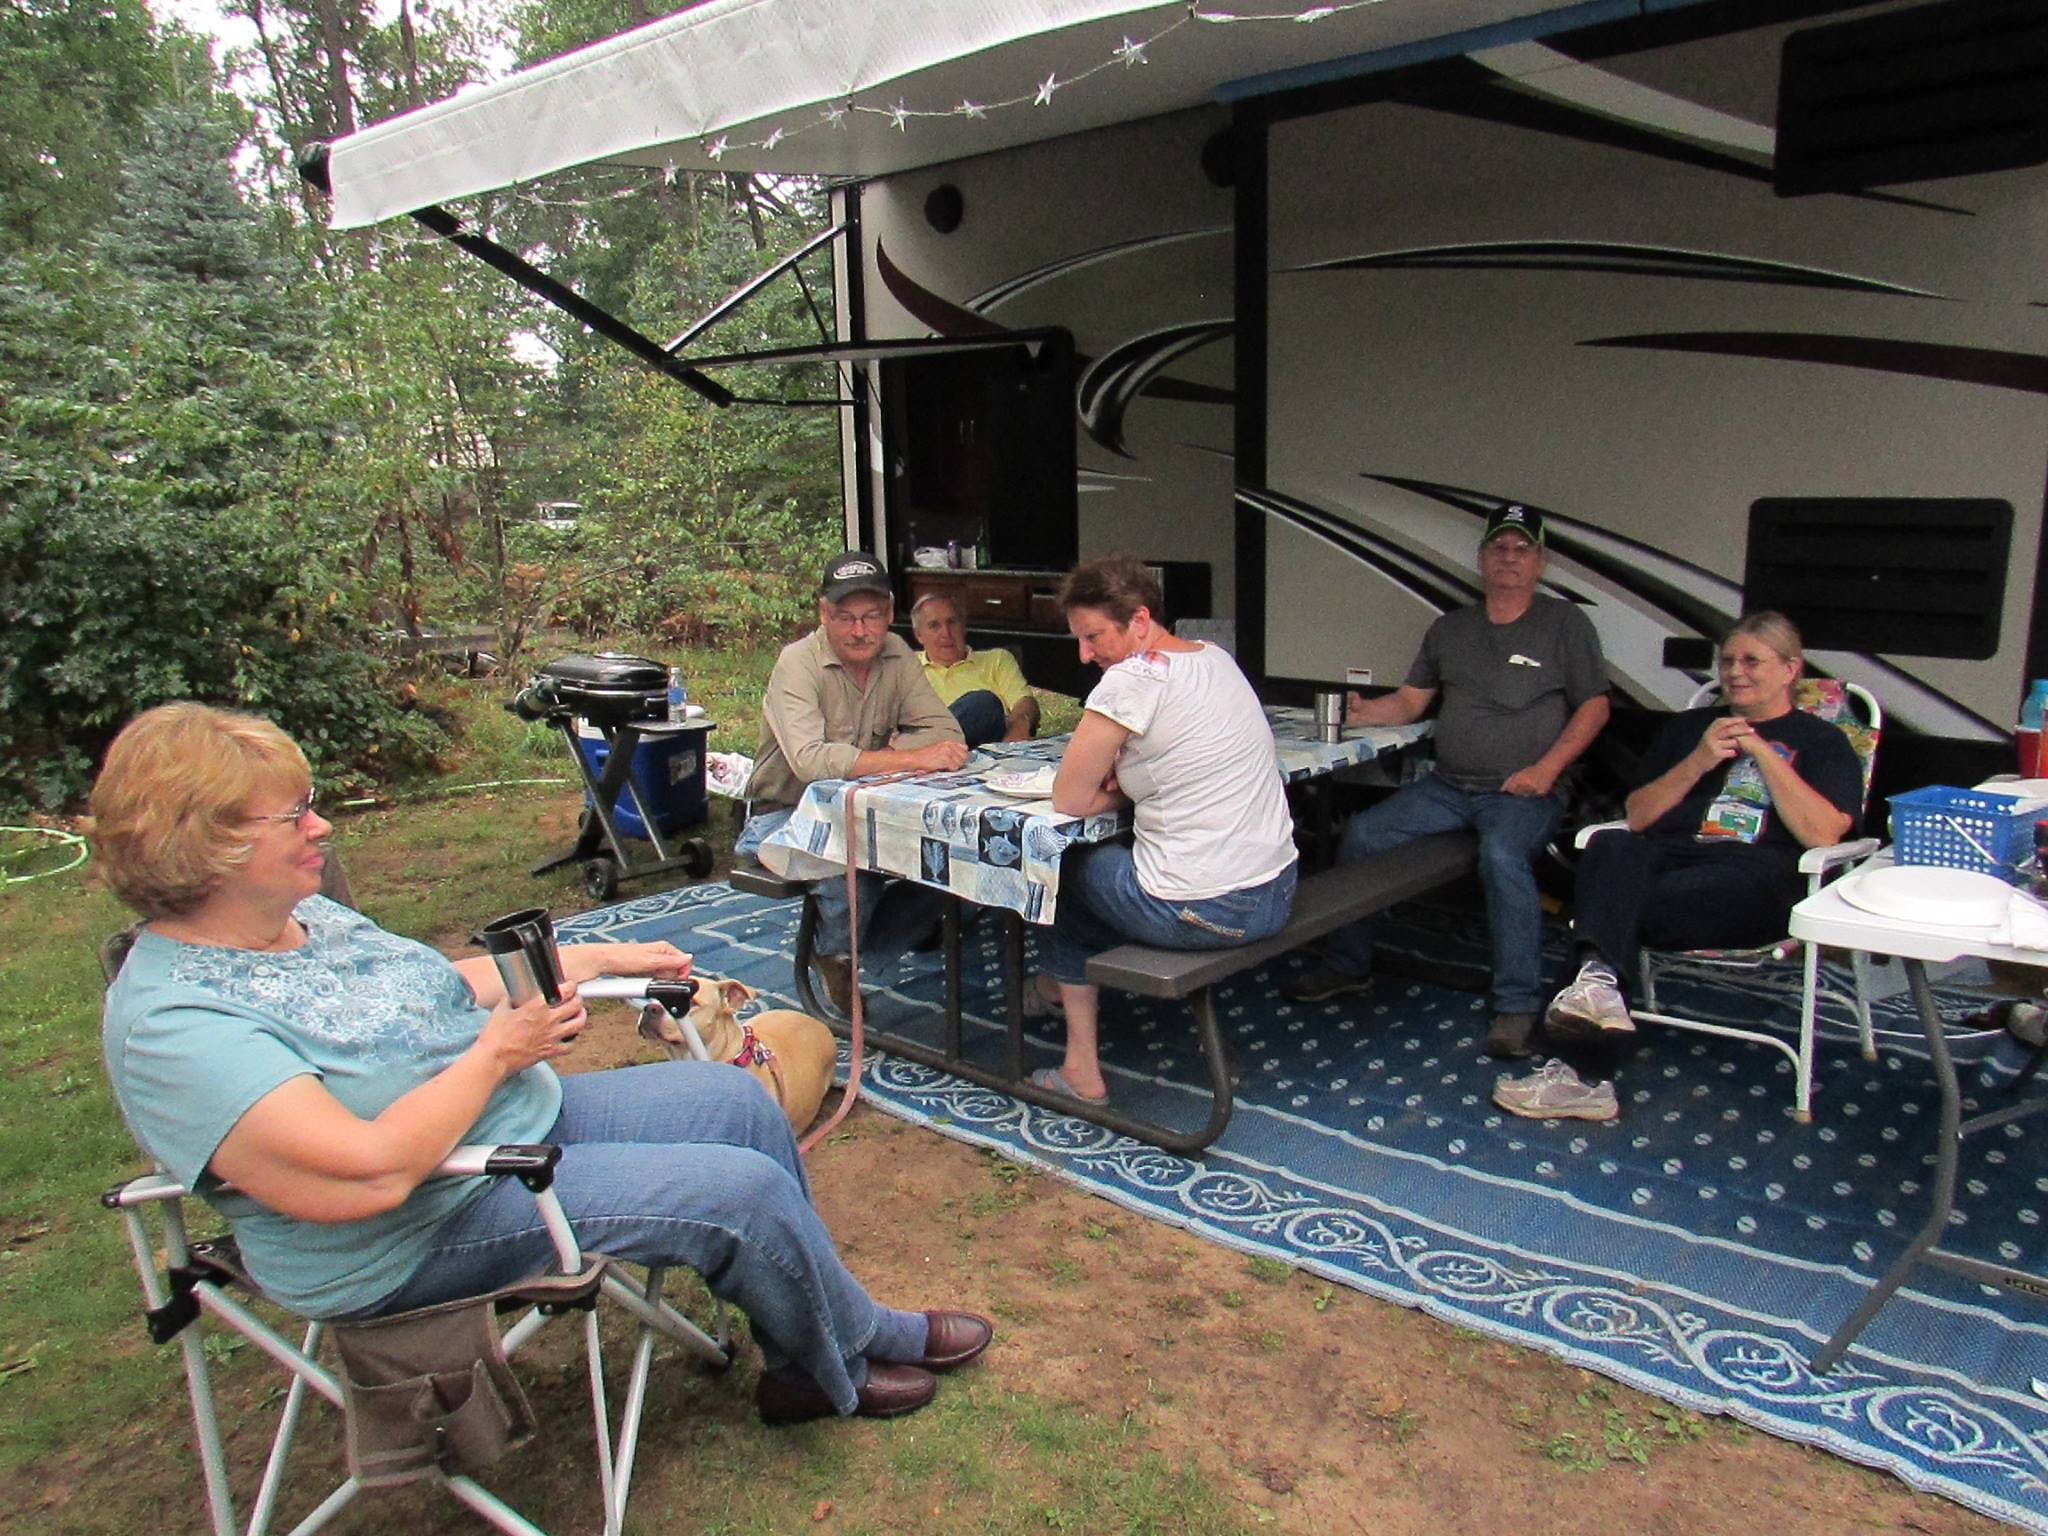 Relaxing atmosphere at Best Bear Lodge & RV park